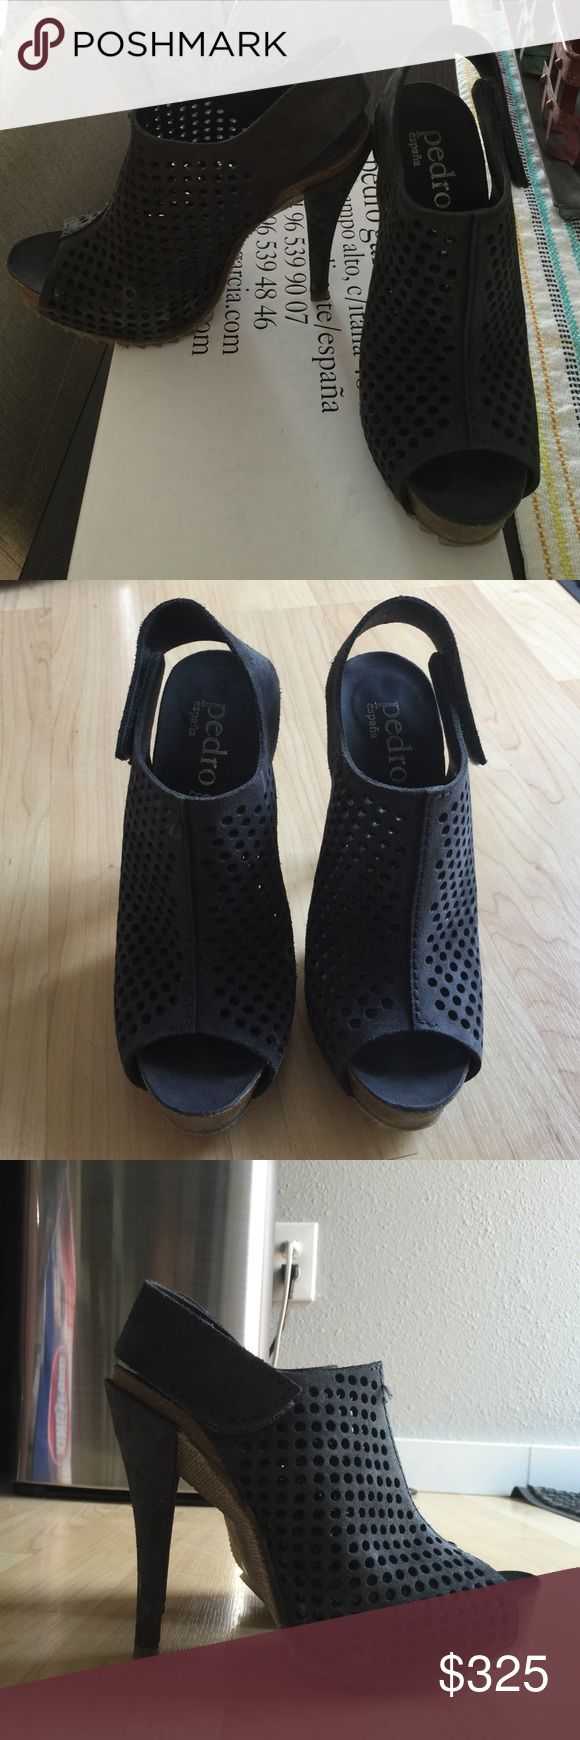 Pedro Garcia Candela size 36.5 Pedro Garcia Candela in Coal Castoro. Size 36.5. Only worn less than a handful of times, but extremely comfortable! Pedro Garcia Shoes Heels